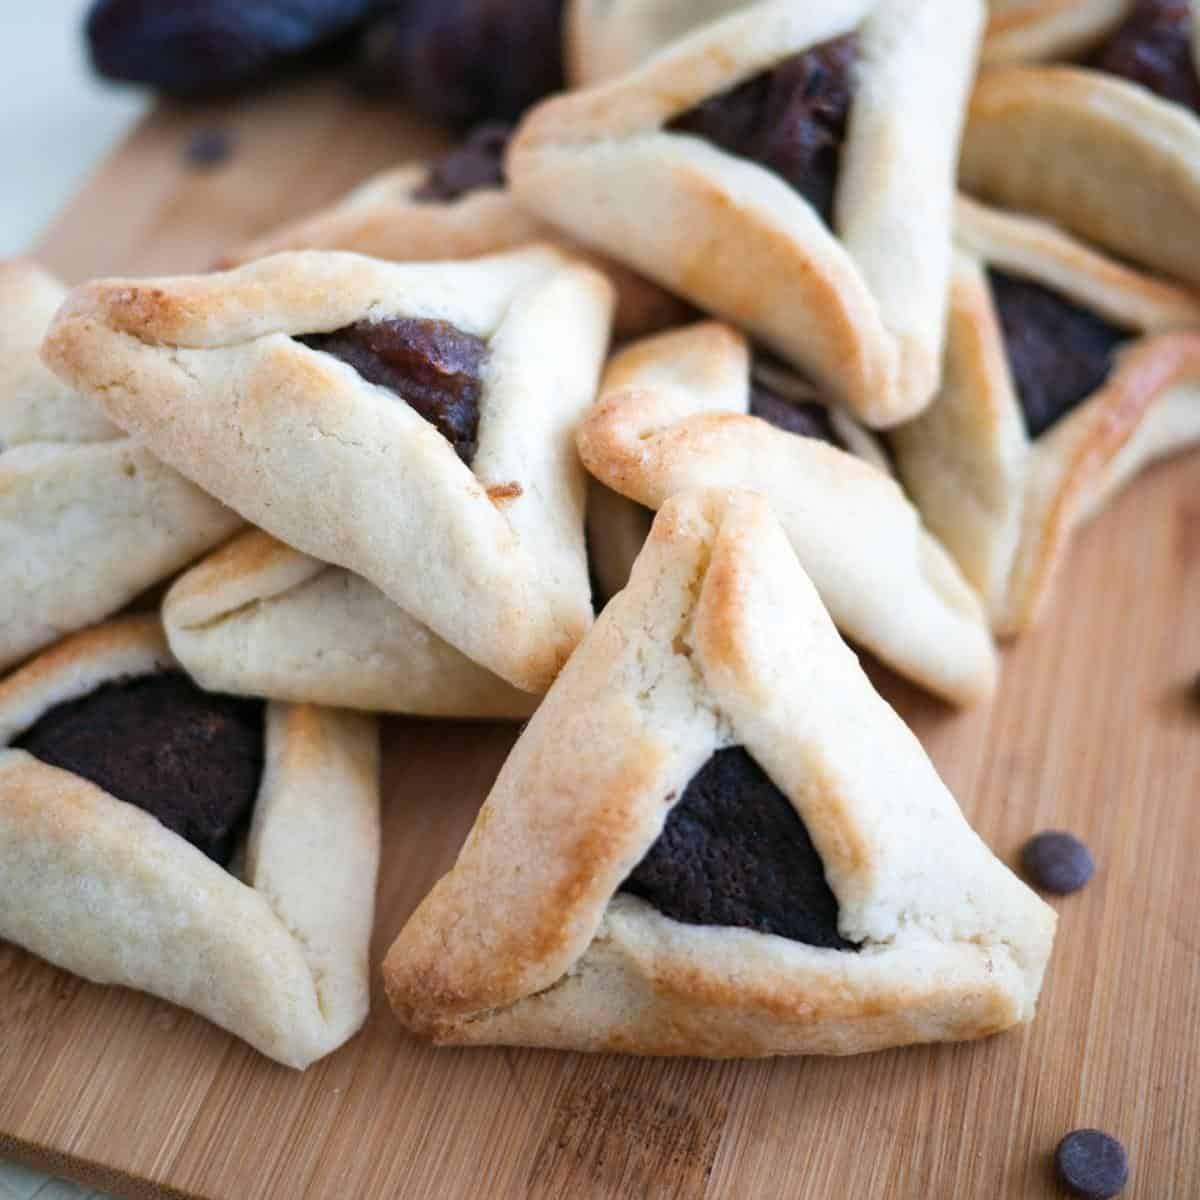 Hamantaschen cookies on a wooden baord